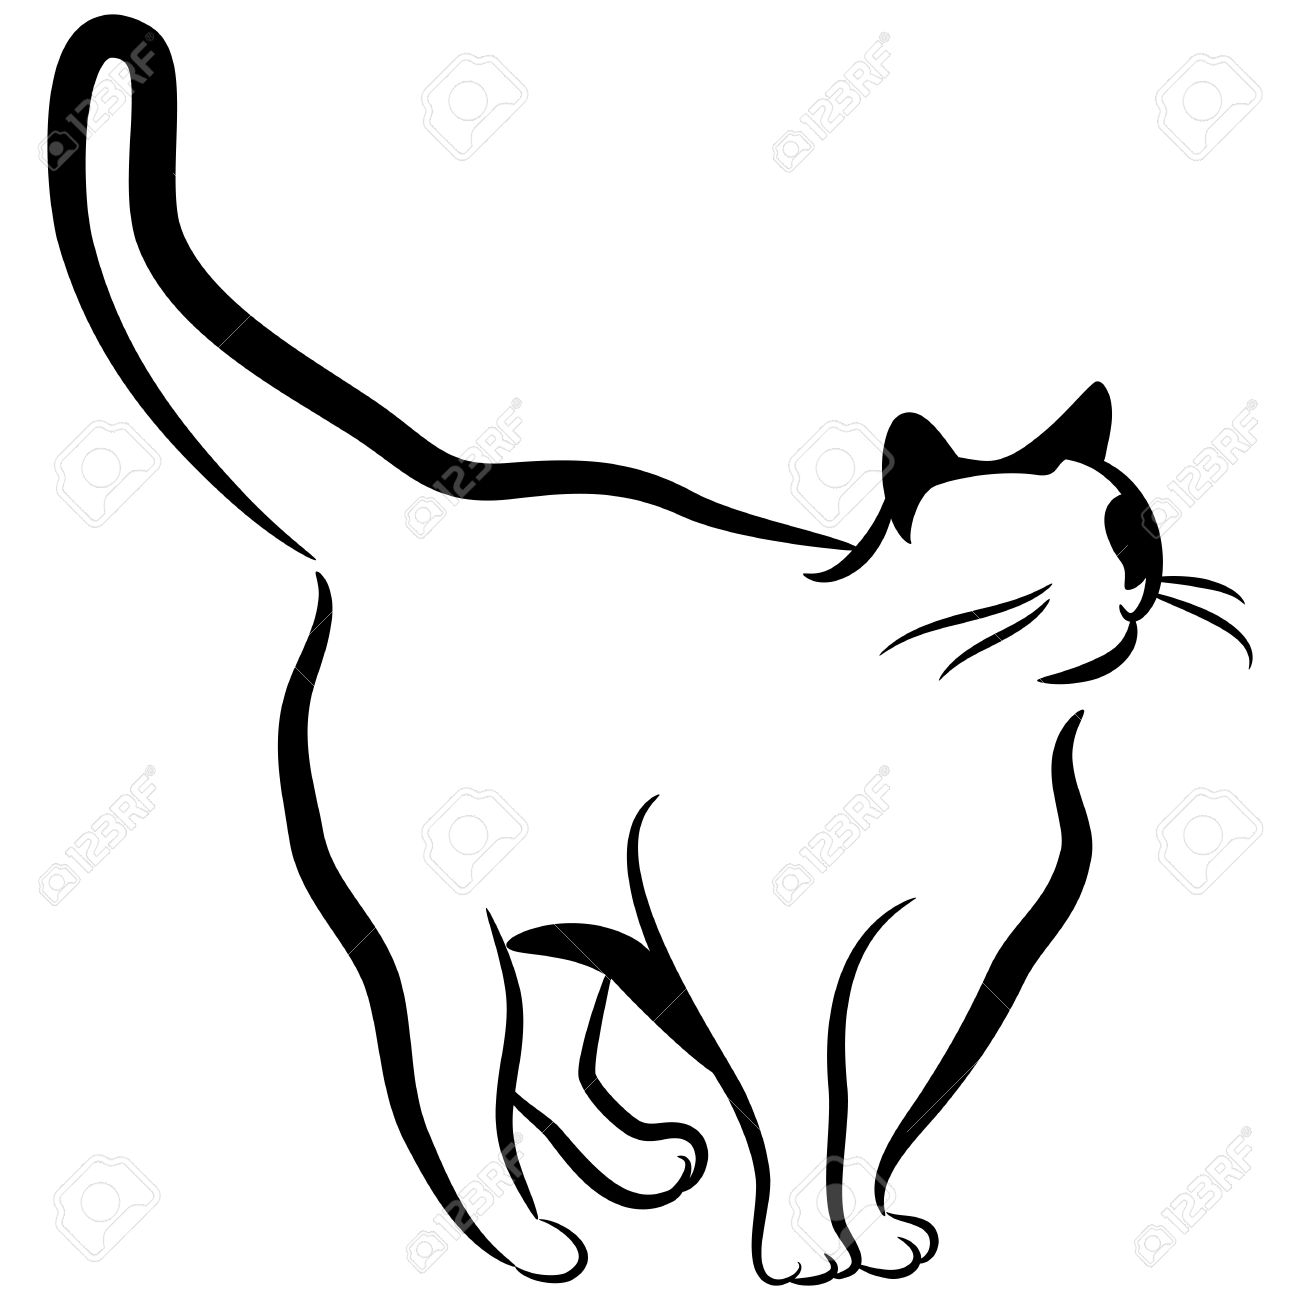 1300x1300 Cat Drawing Black And White An Image Of An Abstract Elegant Cat